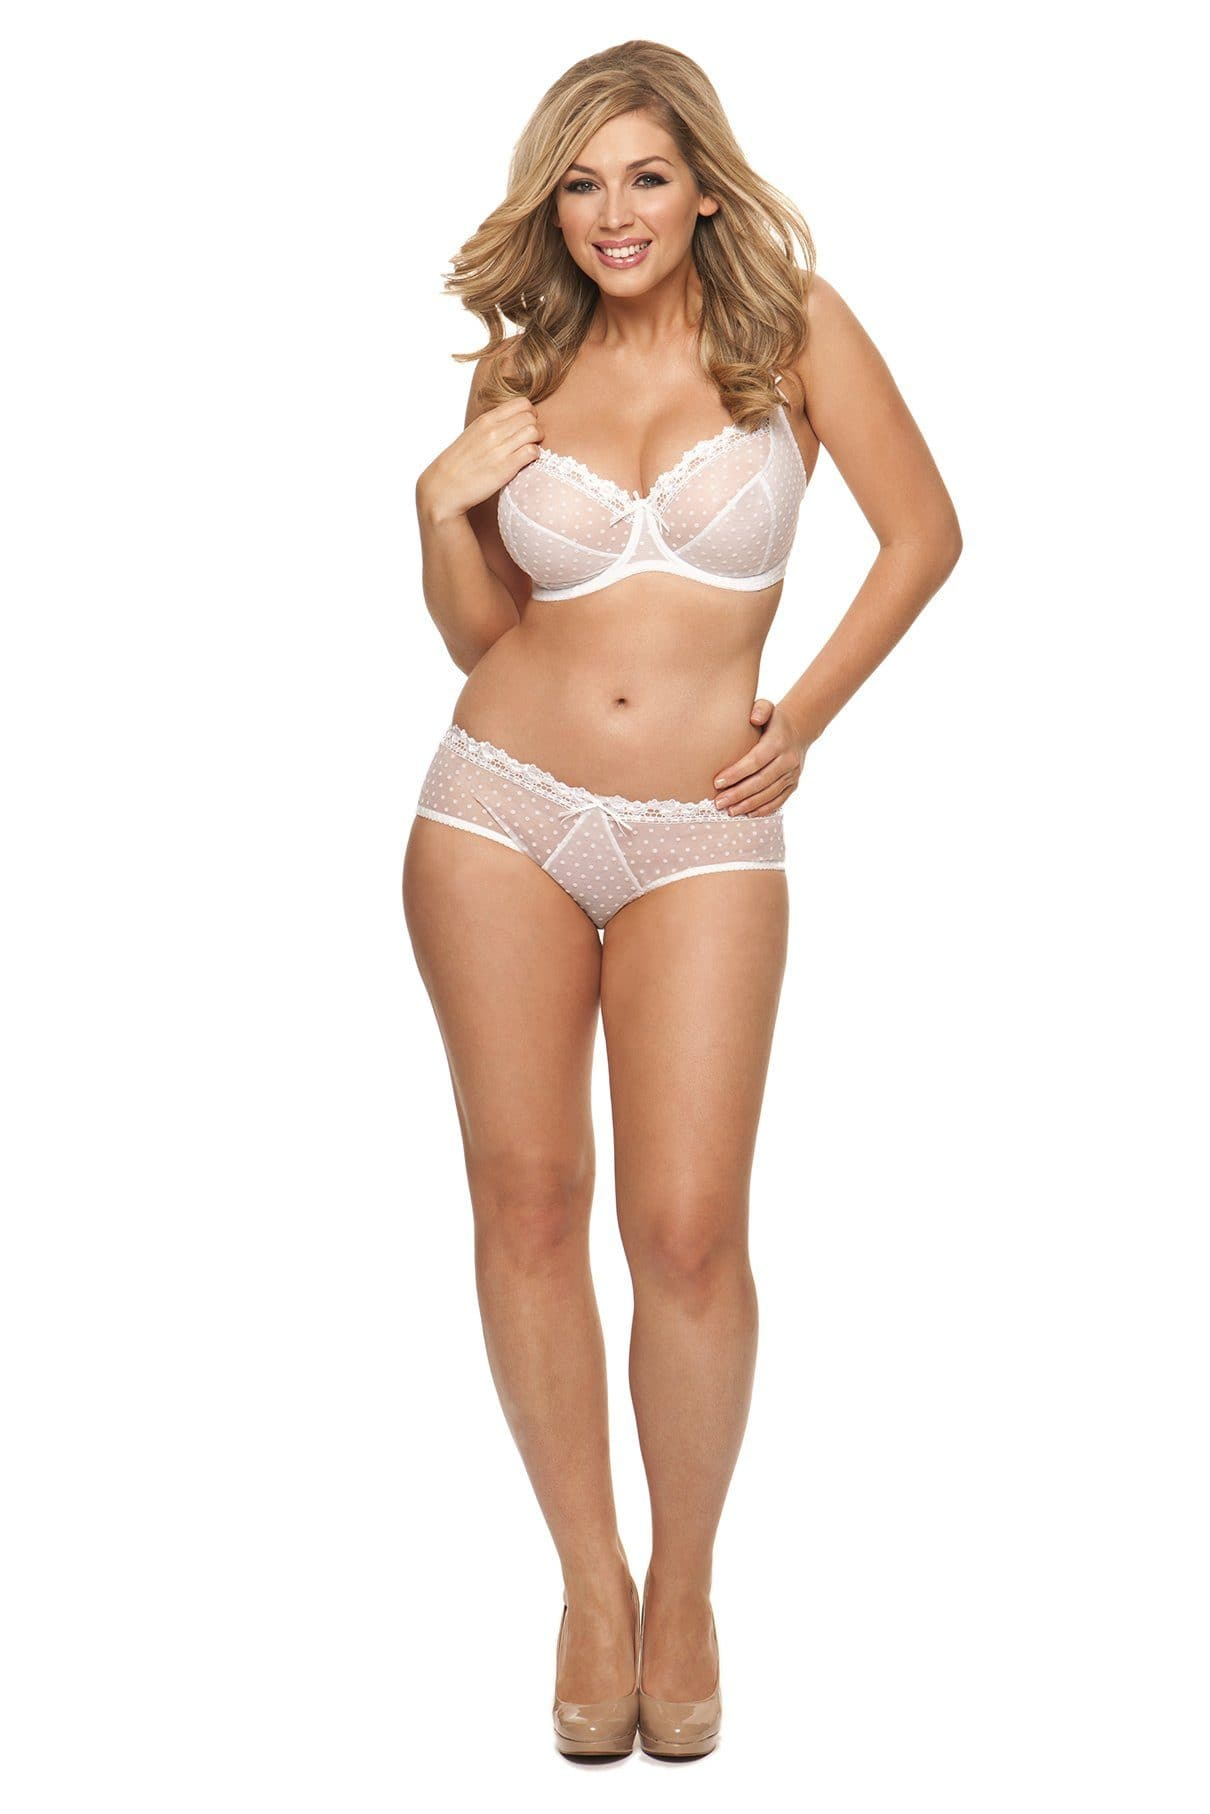 0f5e4c5b10 Curvy Kate Princess Balcony Bra - White